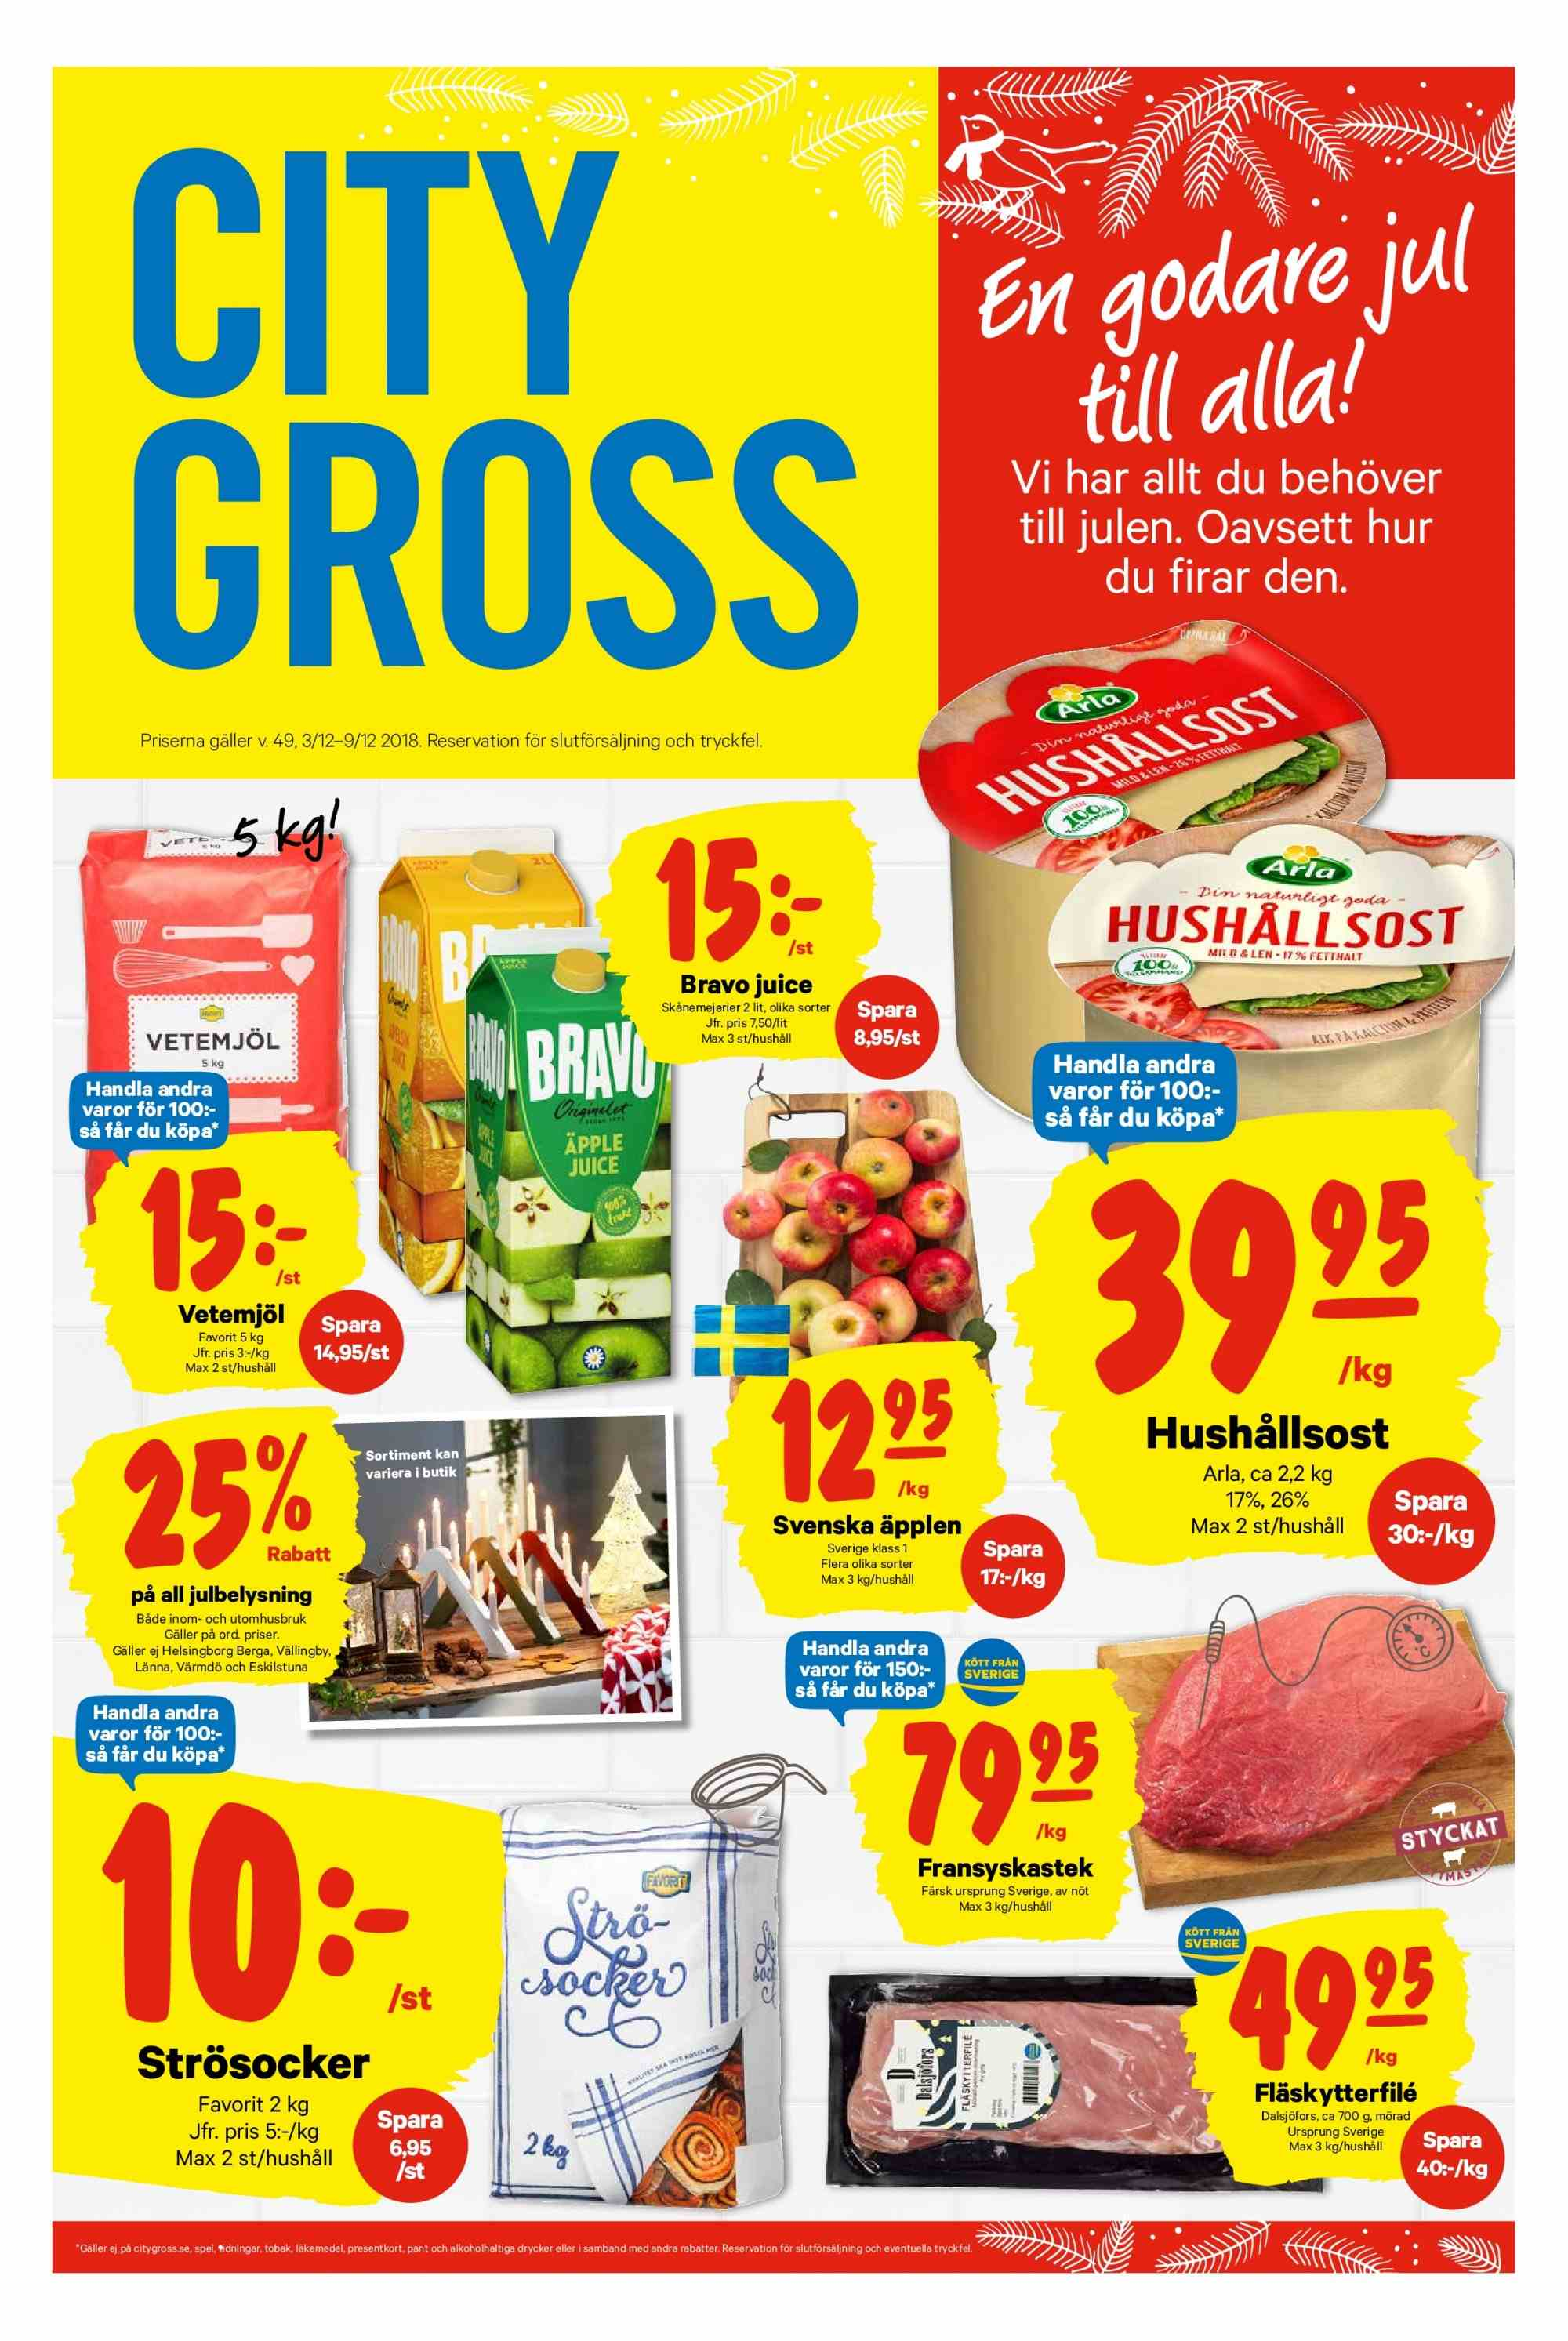 City Gross reklamblad - 3/12 2018 - 9/12 2018. Sida 1.